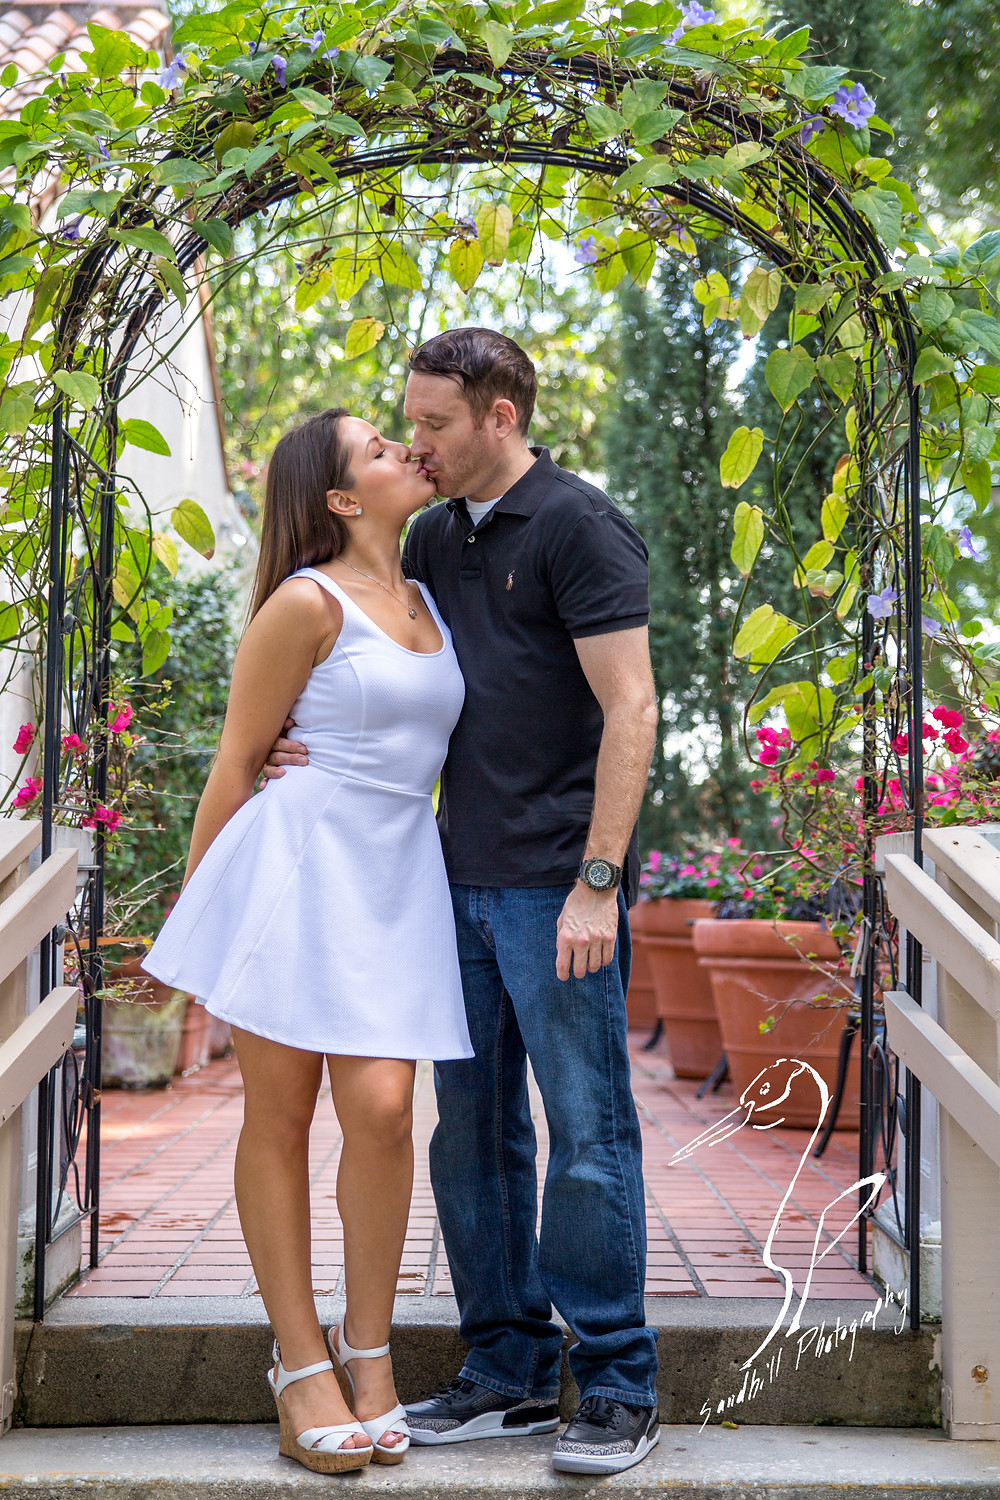 Engagement Photography Selby Gardens archway flowers kiss Sandhill Photography